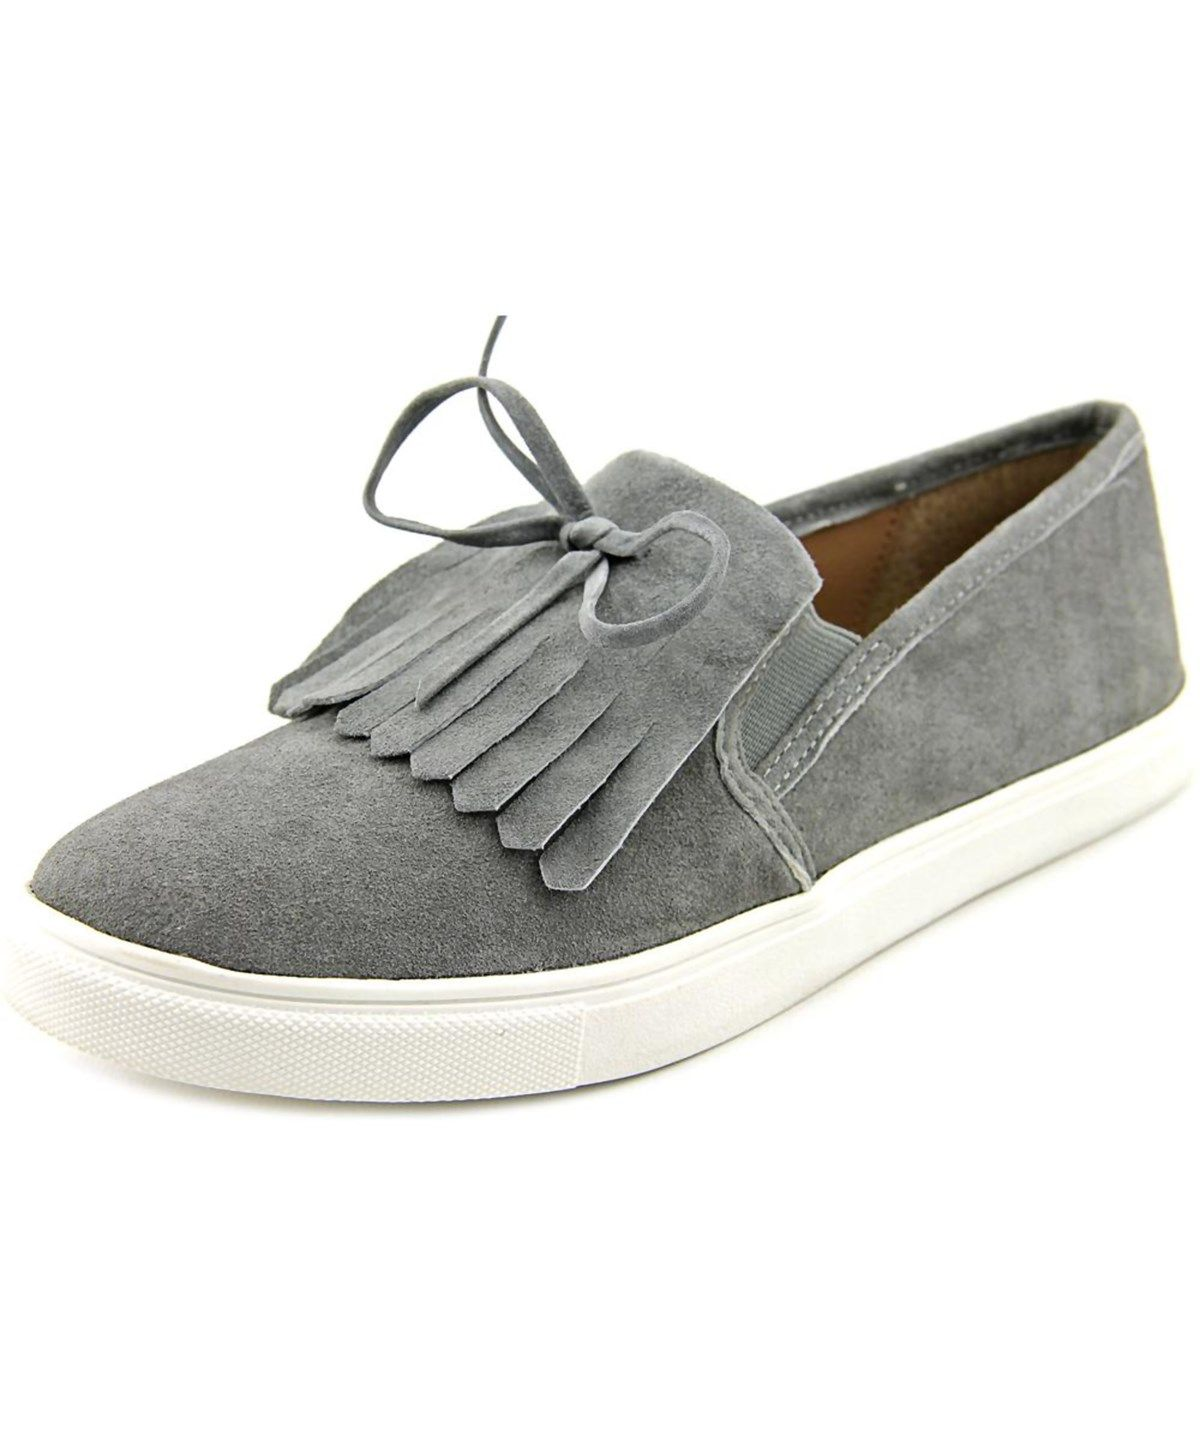 3c84a5b1a02 STEVE MADDEN Steve Madden Eban Women Round Toe Suede Gray Sneakers .   stevemadden  shoes  sneakers